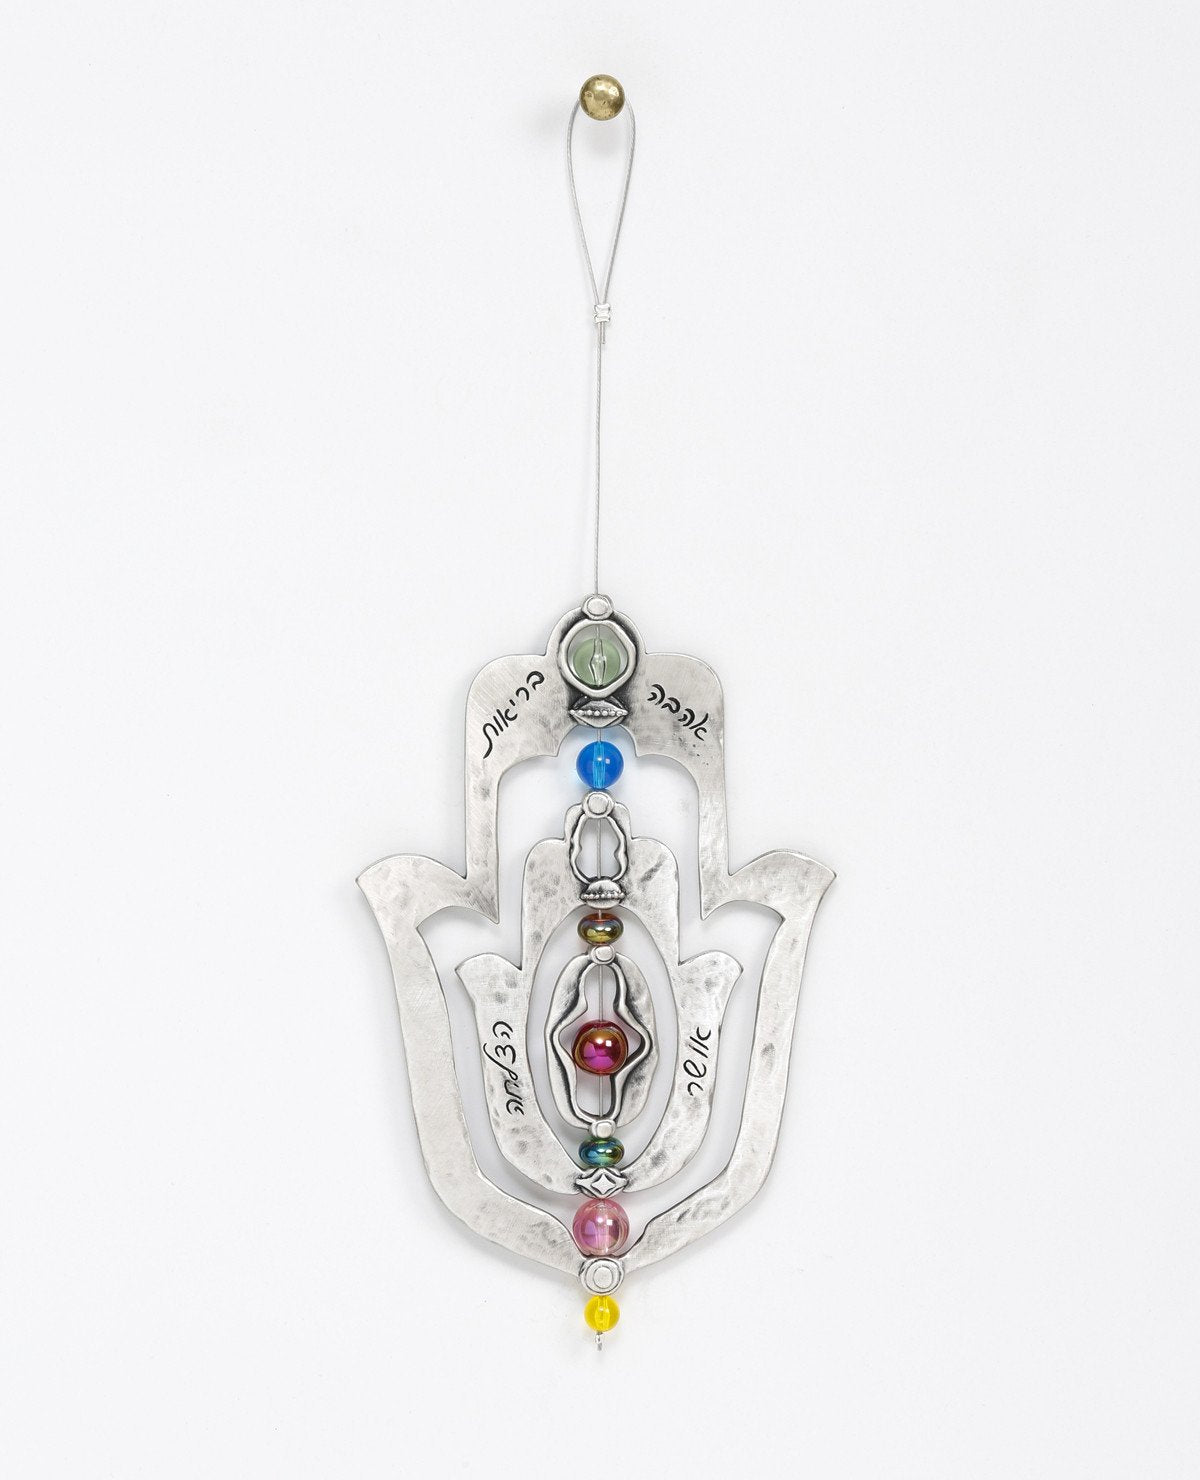 An impressive and neatly designed hanging Hamsa ornament coated in sterling silver. Set on an axis inside a large Hamsa is a smaller Hamsa. The axis is made from a thin string coated in silver and decorated by colorful beads. The ornament spins on the axis, and on each side appear different words of blessing. The qualities of the Hamsa on one side and the power of the words respectively on the other. A great gift that is also a joyful and heartwarming blessing, for any occasion. The ornament comes with a fa